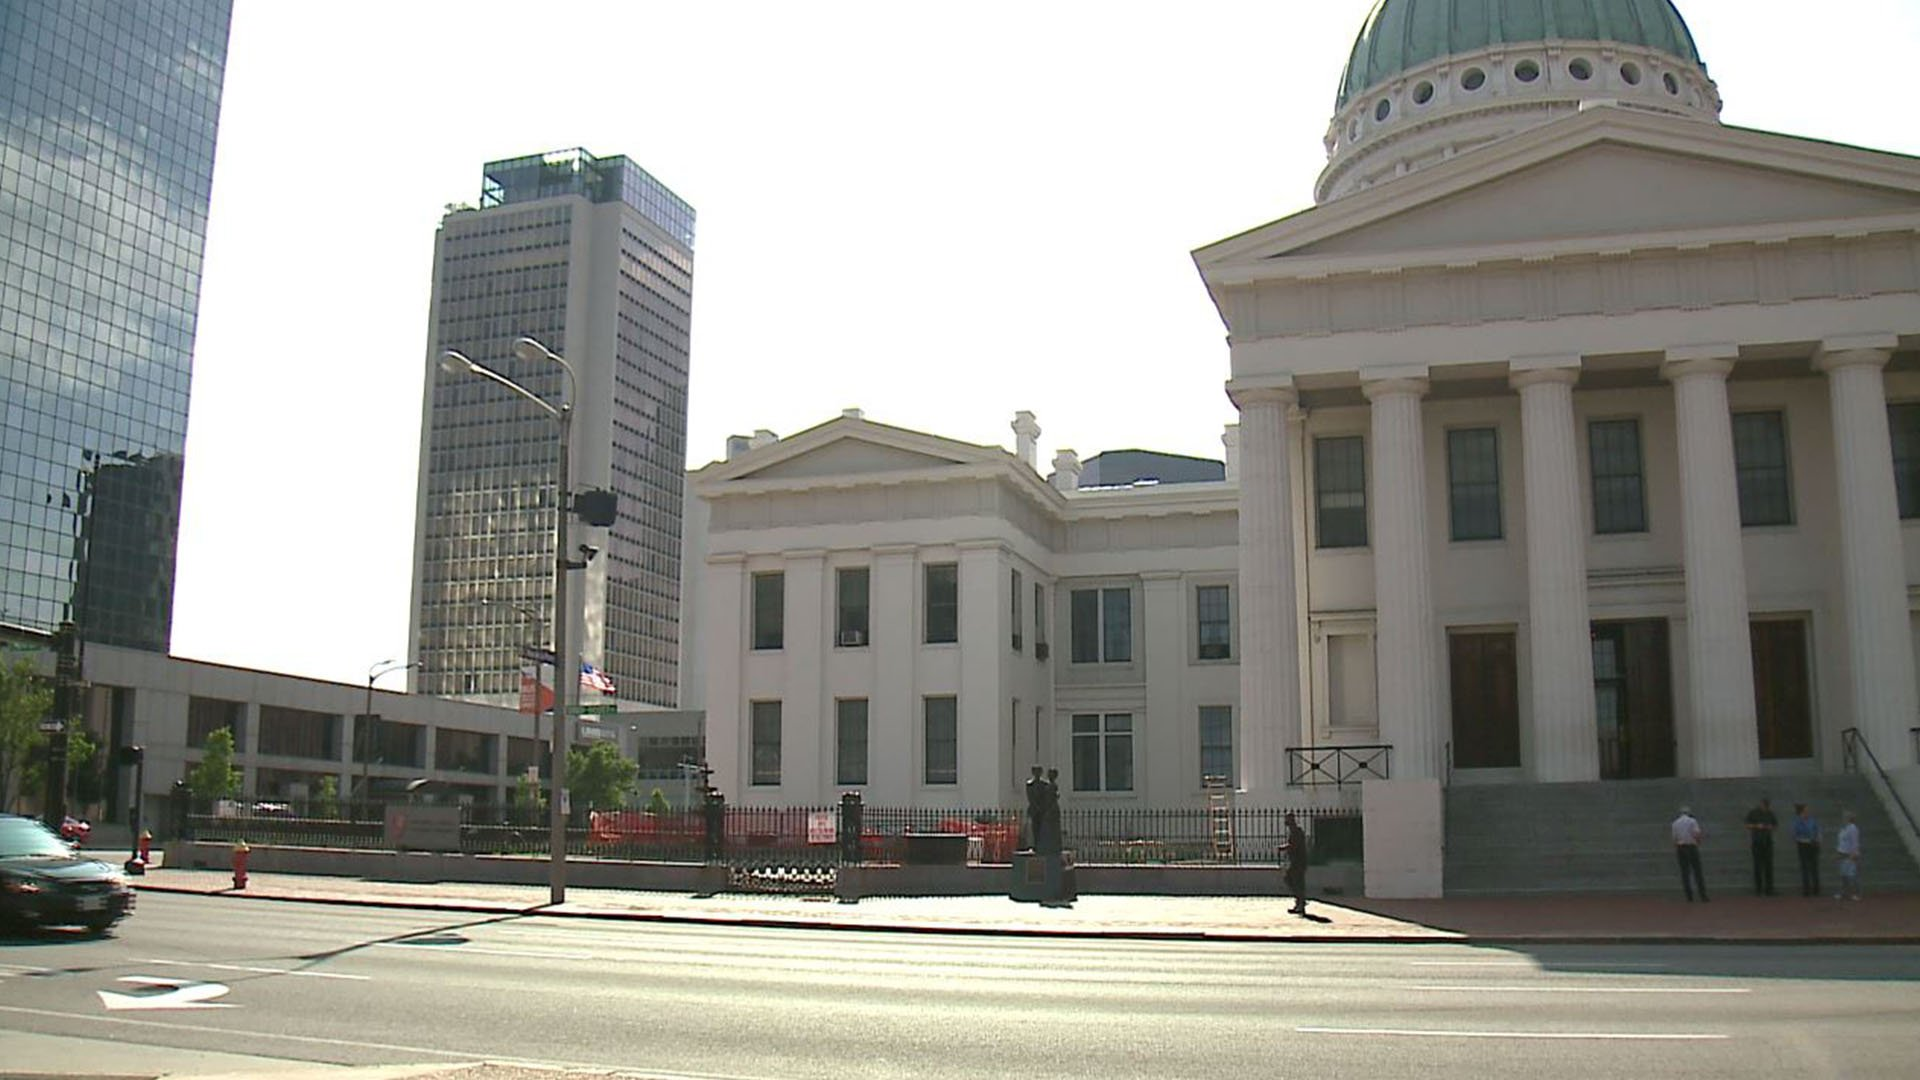 Images of the Old Courthouse ( Credit: KMOV)